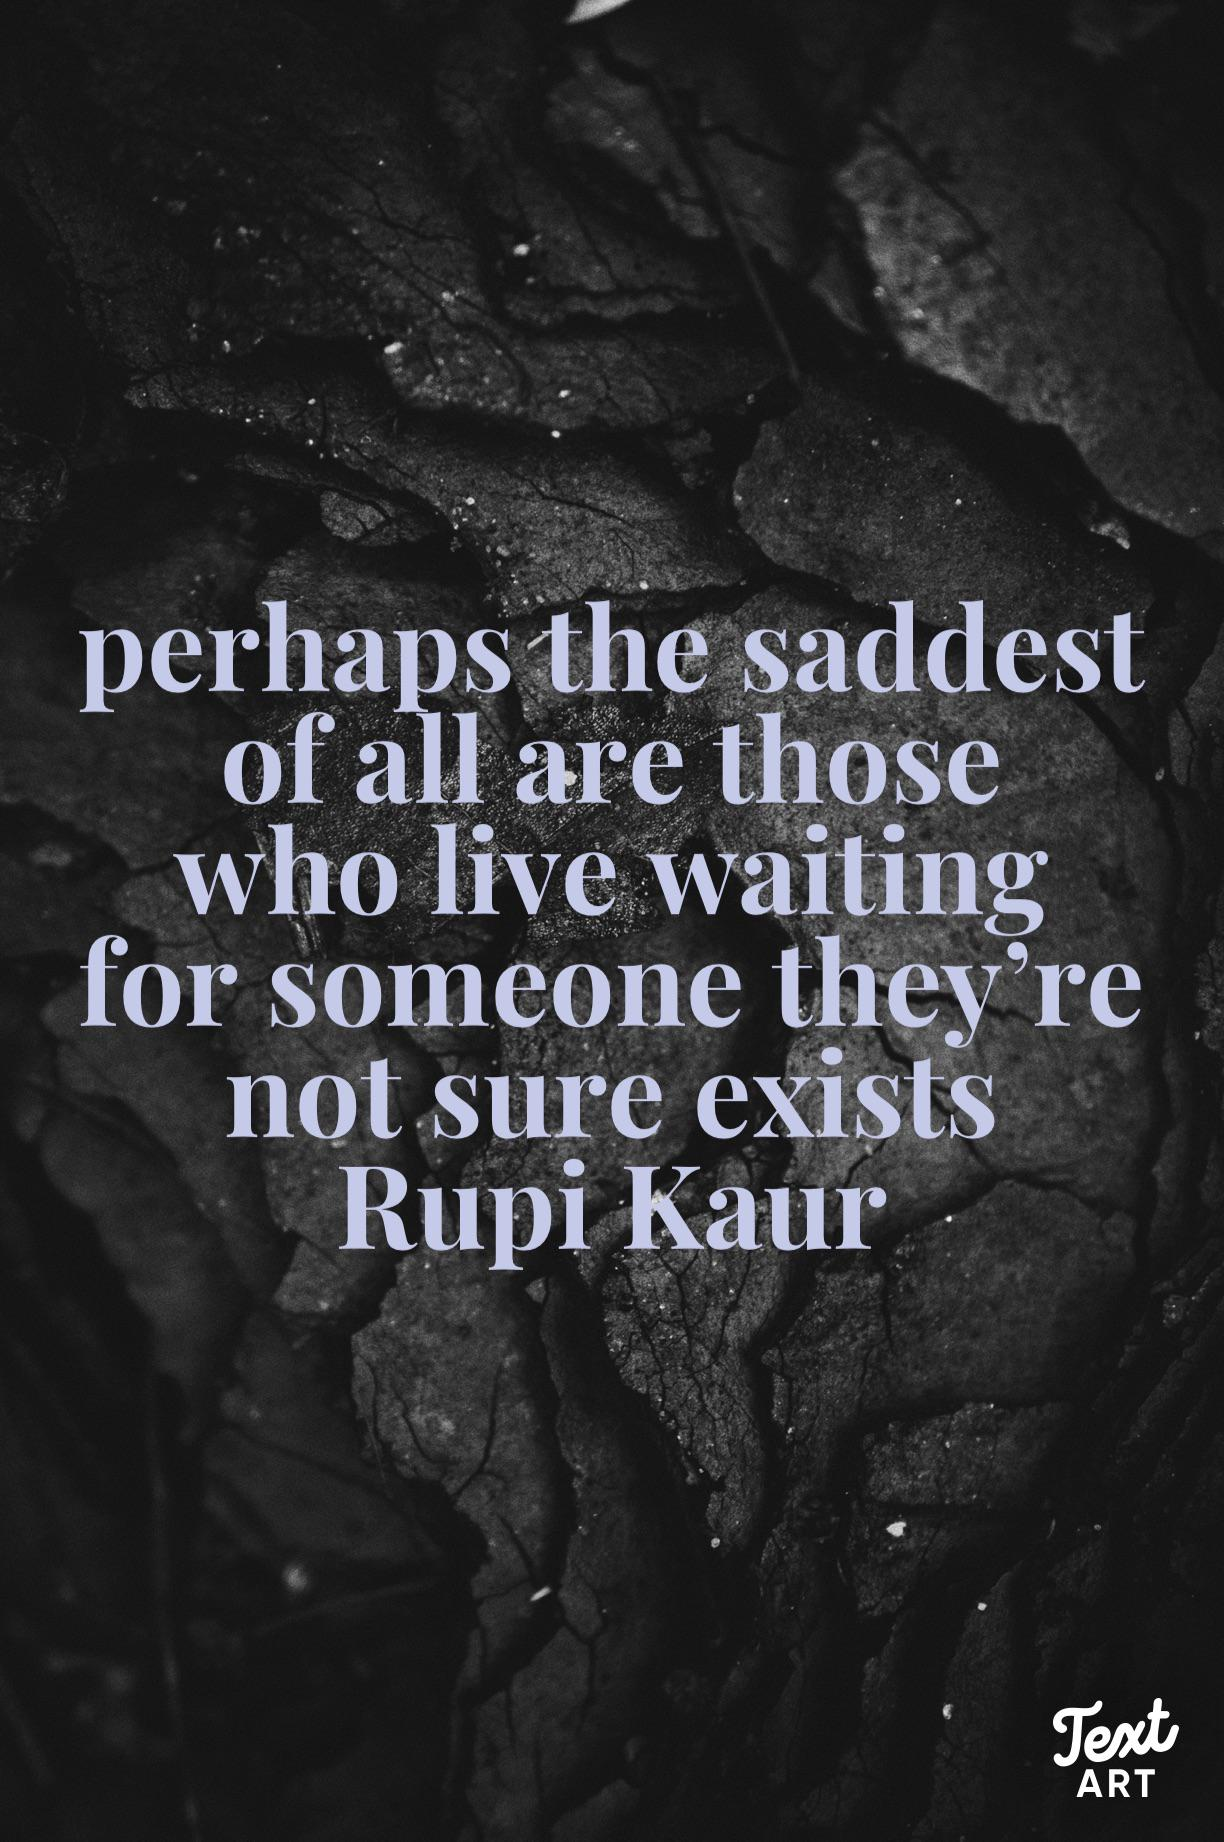 """Perhaps the saddest of all are those who live waiting for someone they're not sure exists"" Rupi Kaur (1224 x 1842) (OC)"